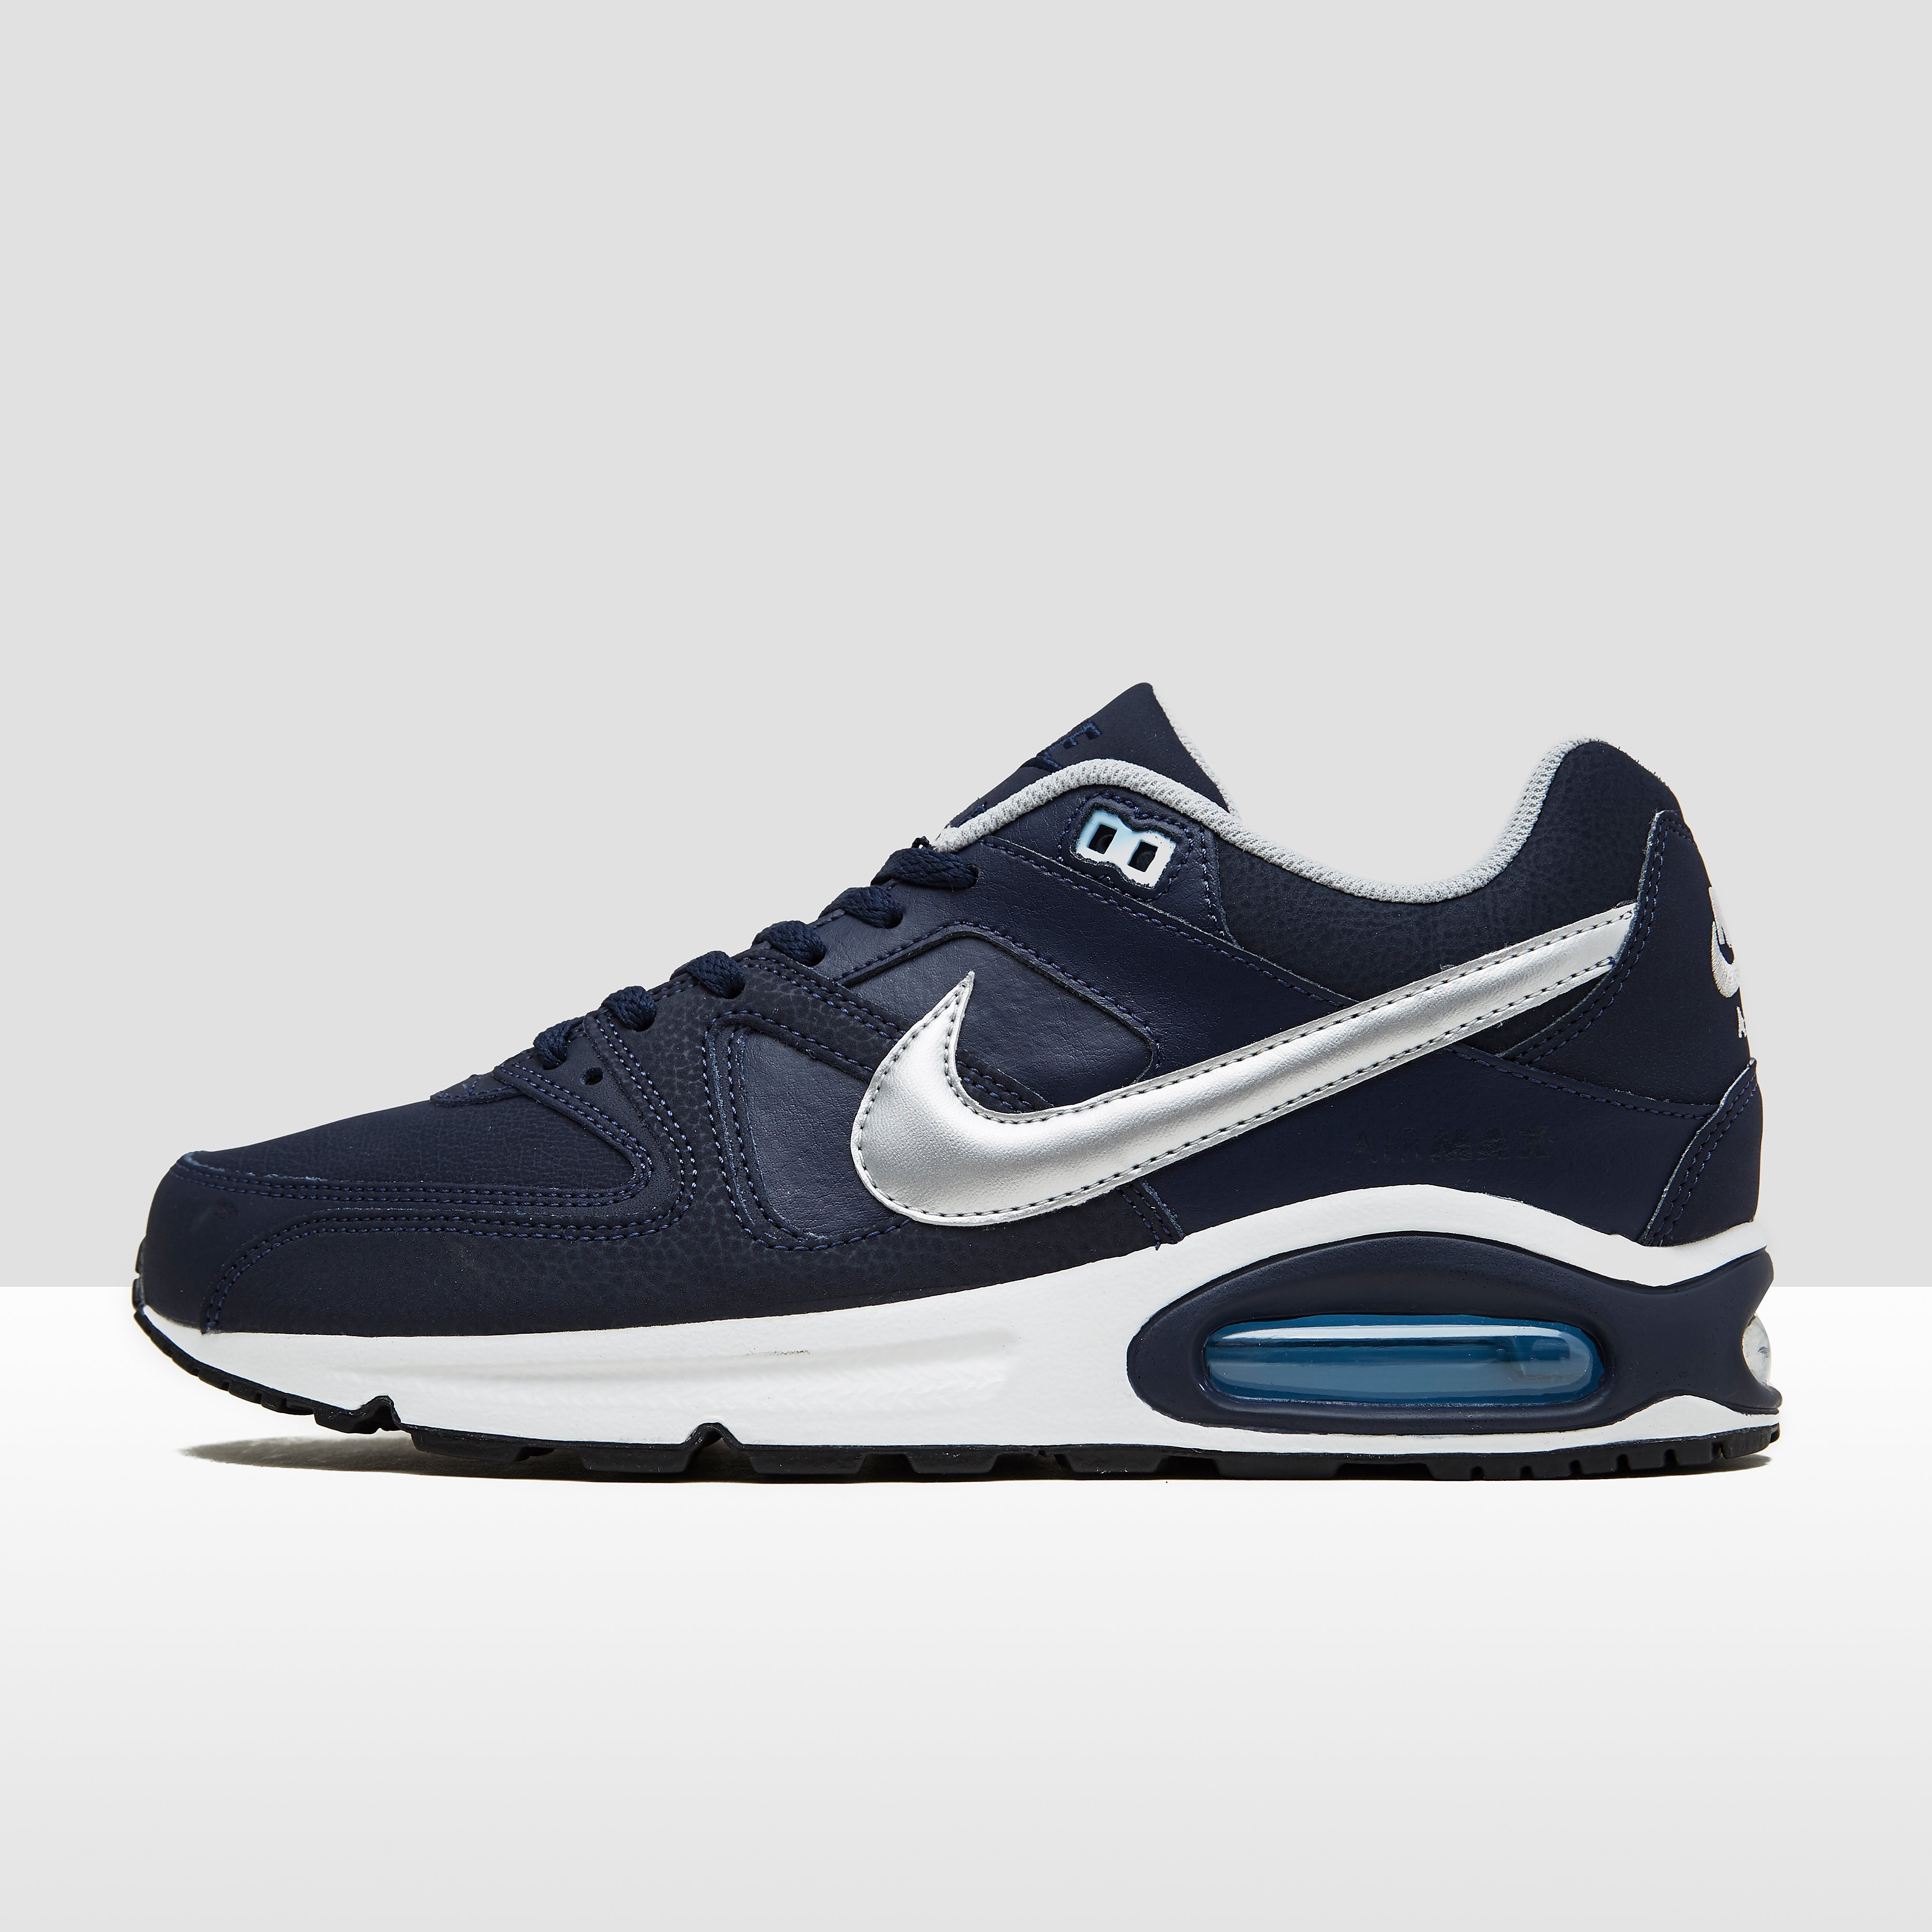 Nike Air Max Command herensneaker blauw